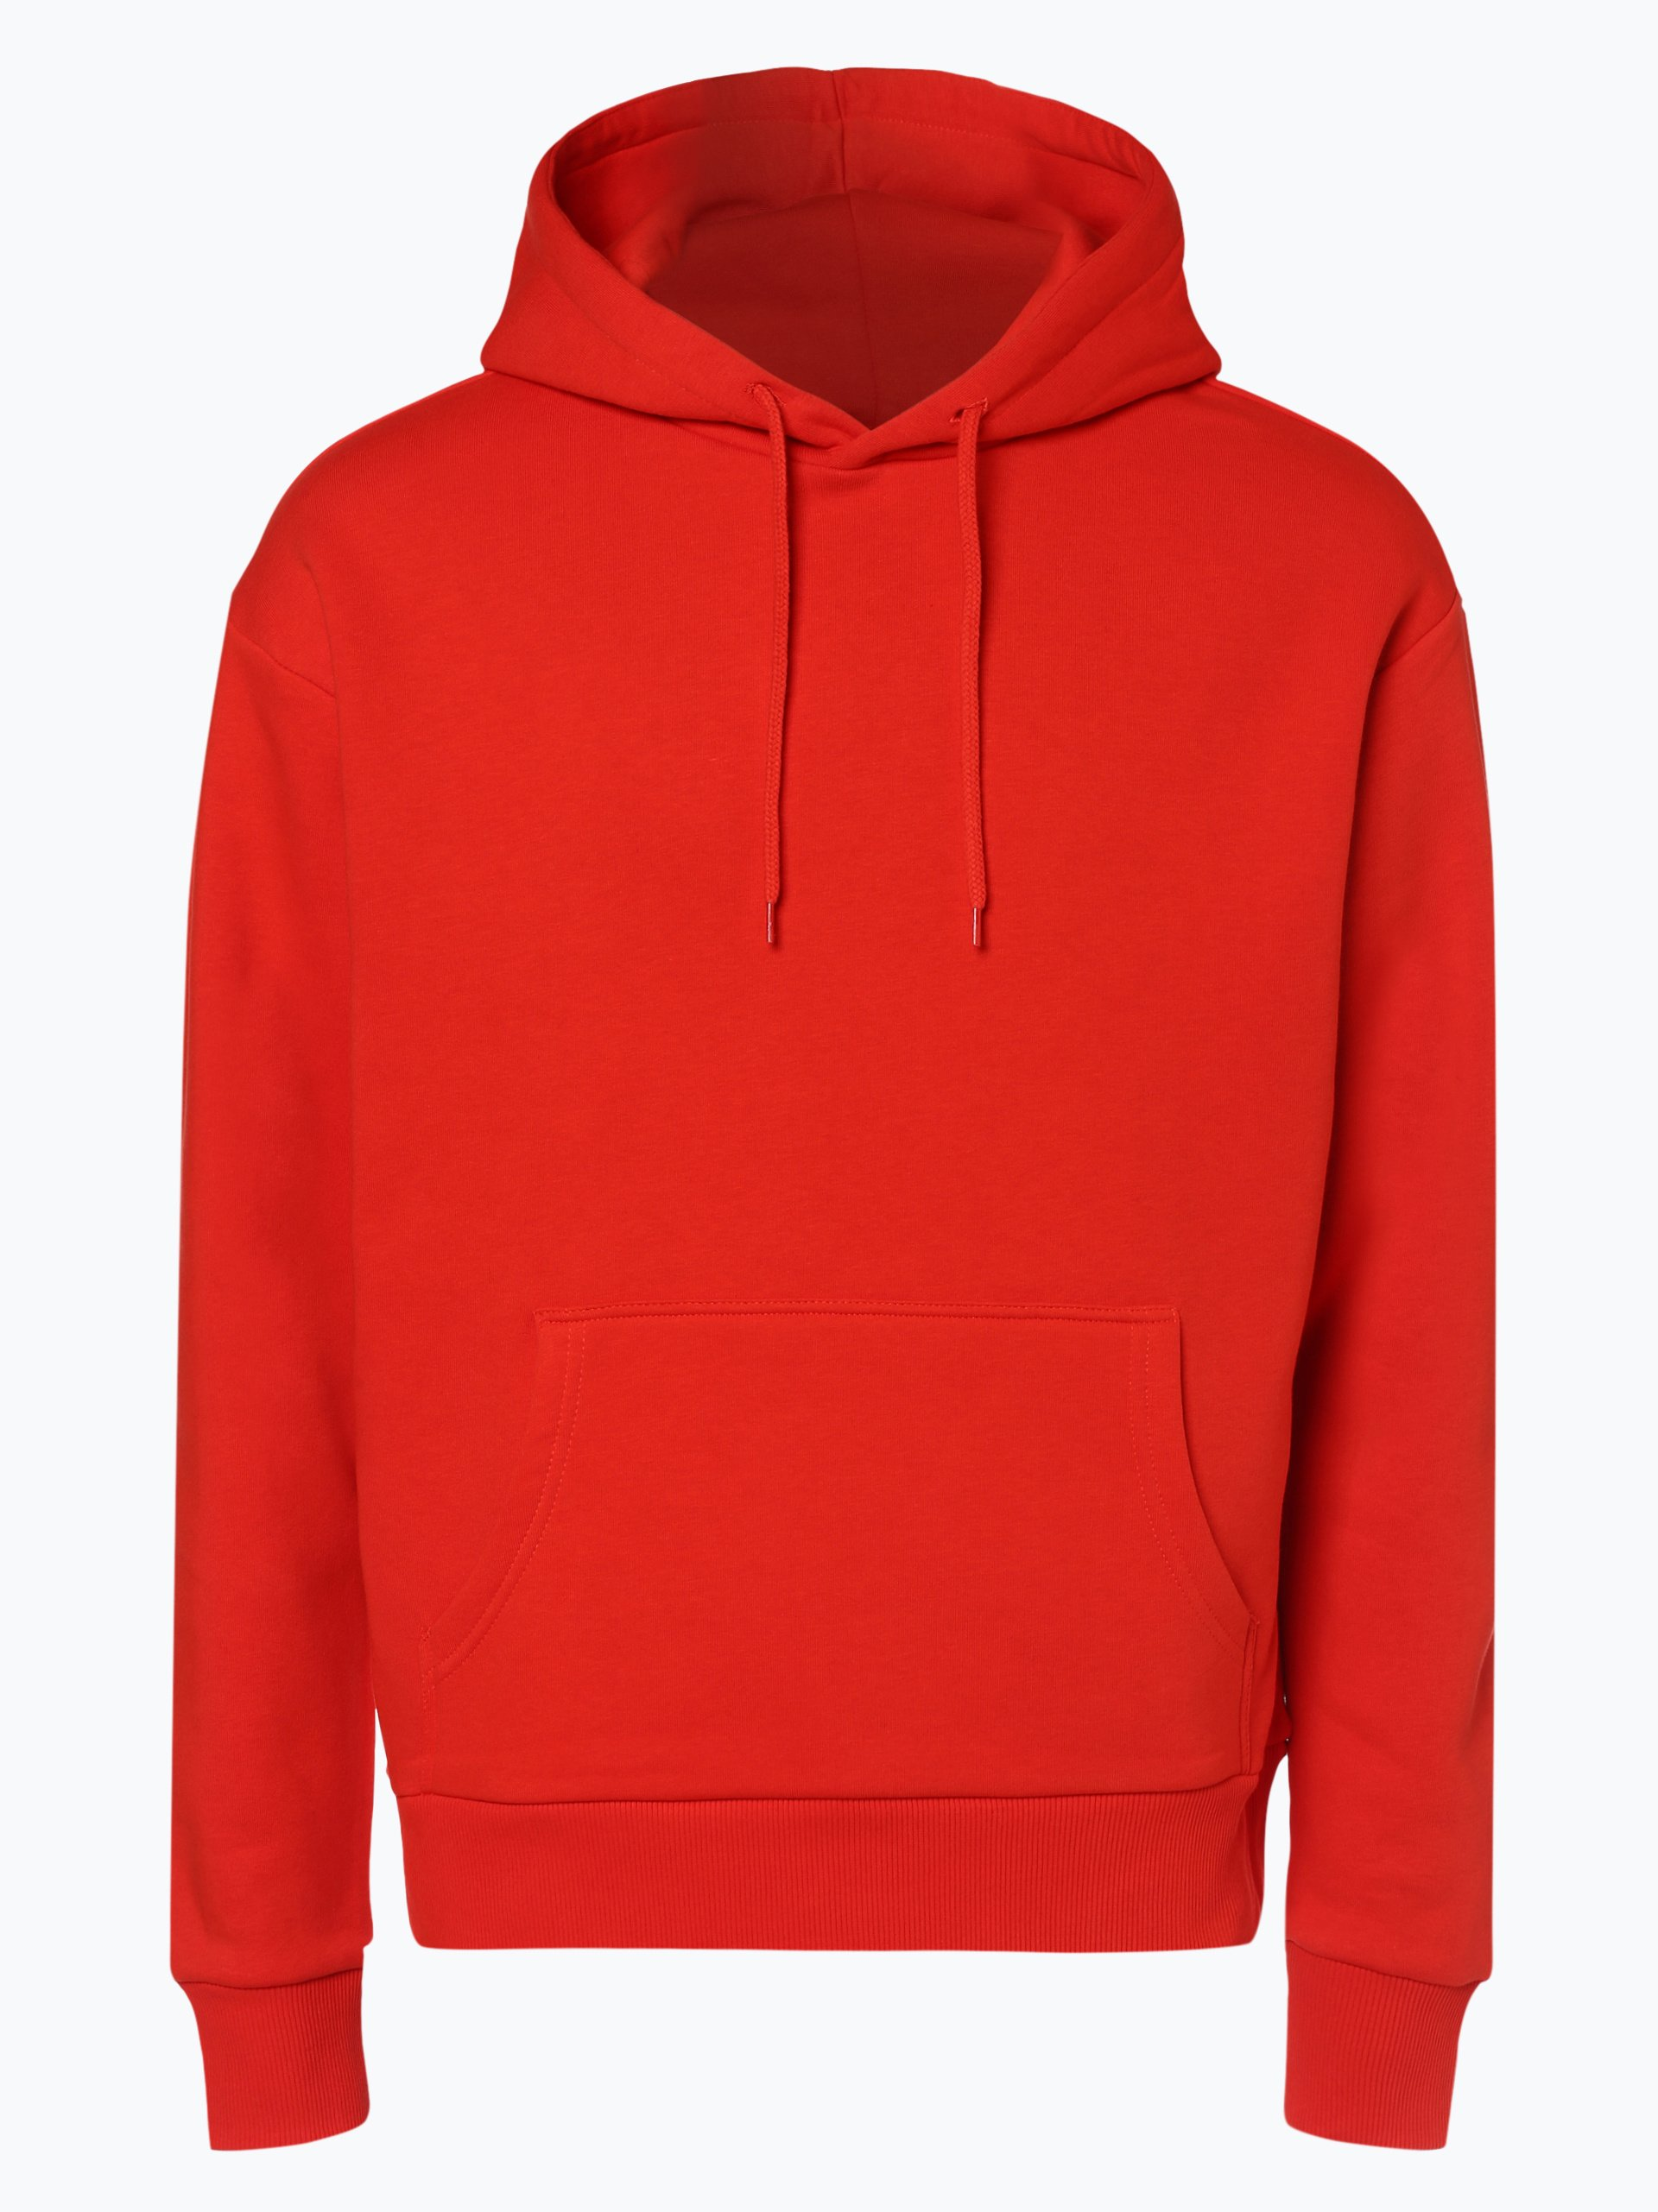 Review Herren Sweatshirt